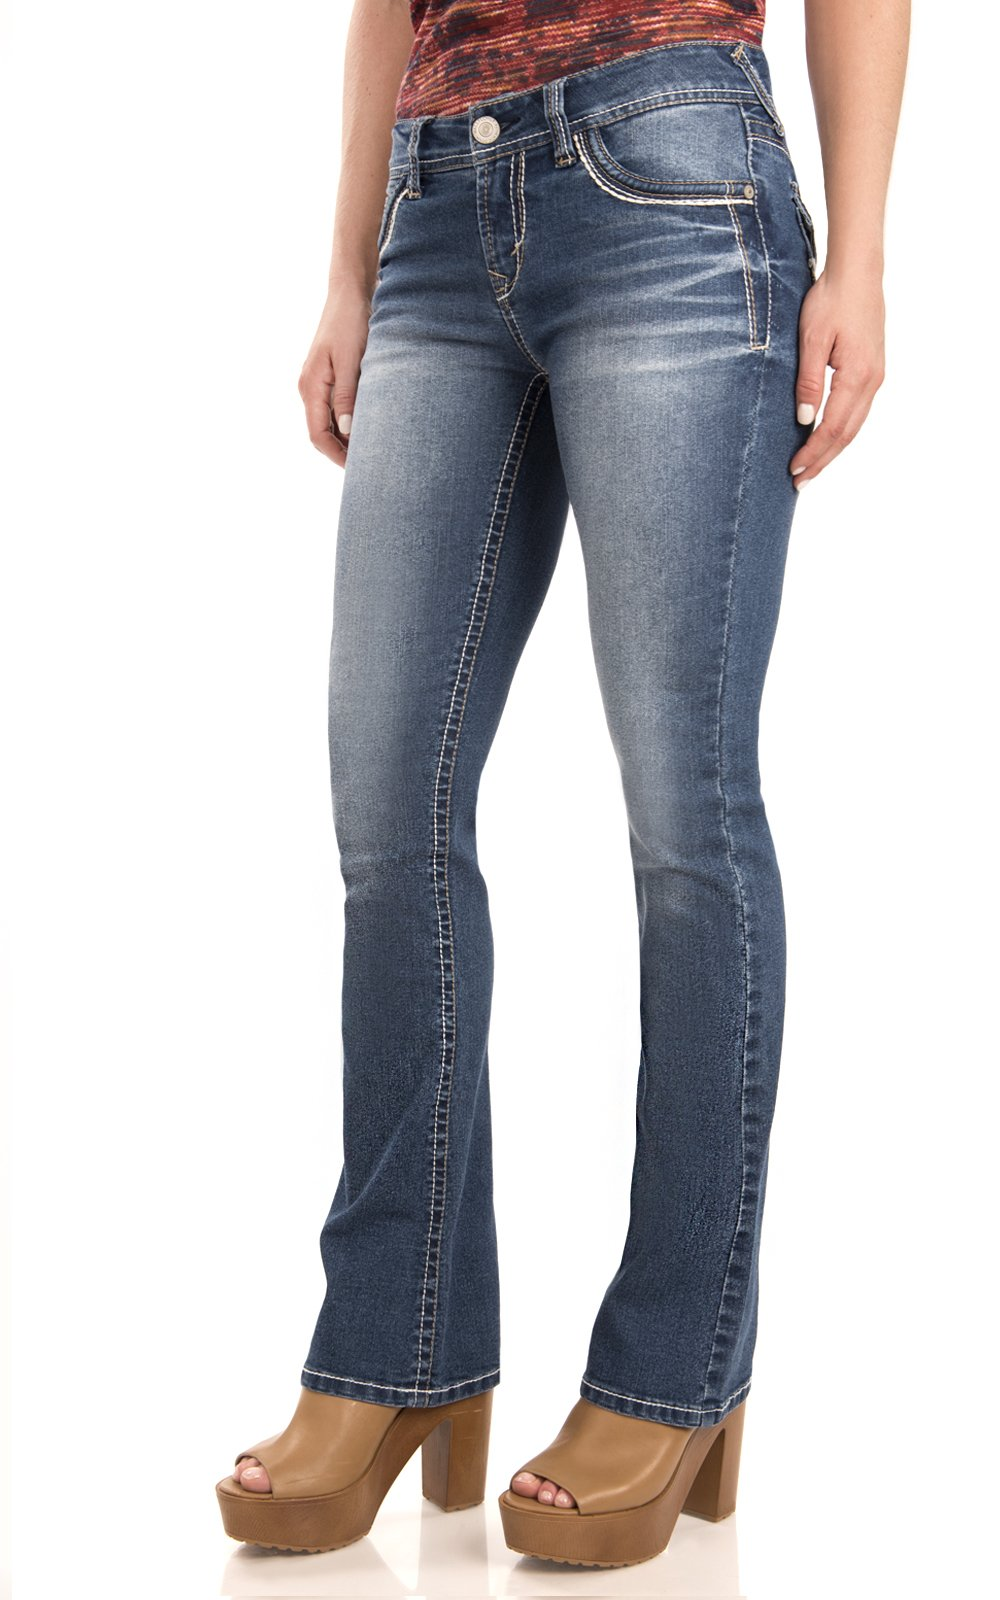 Plus Size Clothing - Women's Plus Size Sculpting Slim Fit Skinny Leg Pull On Jean